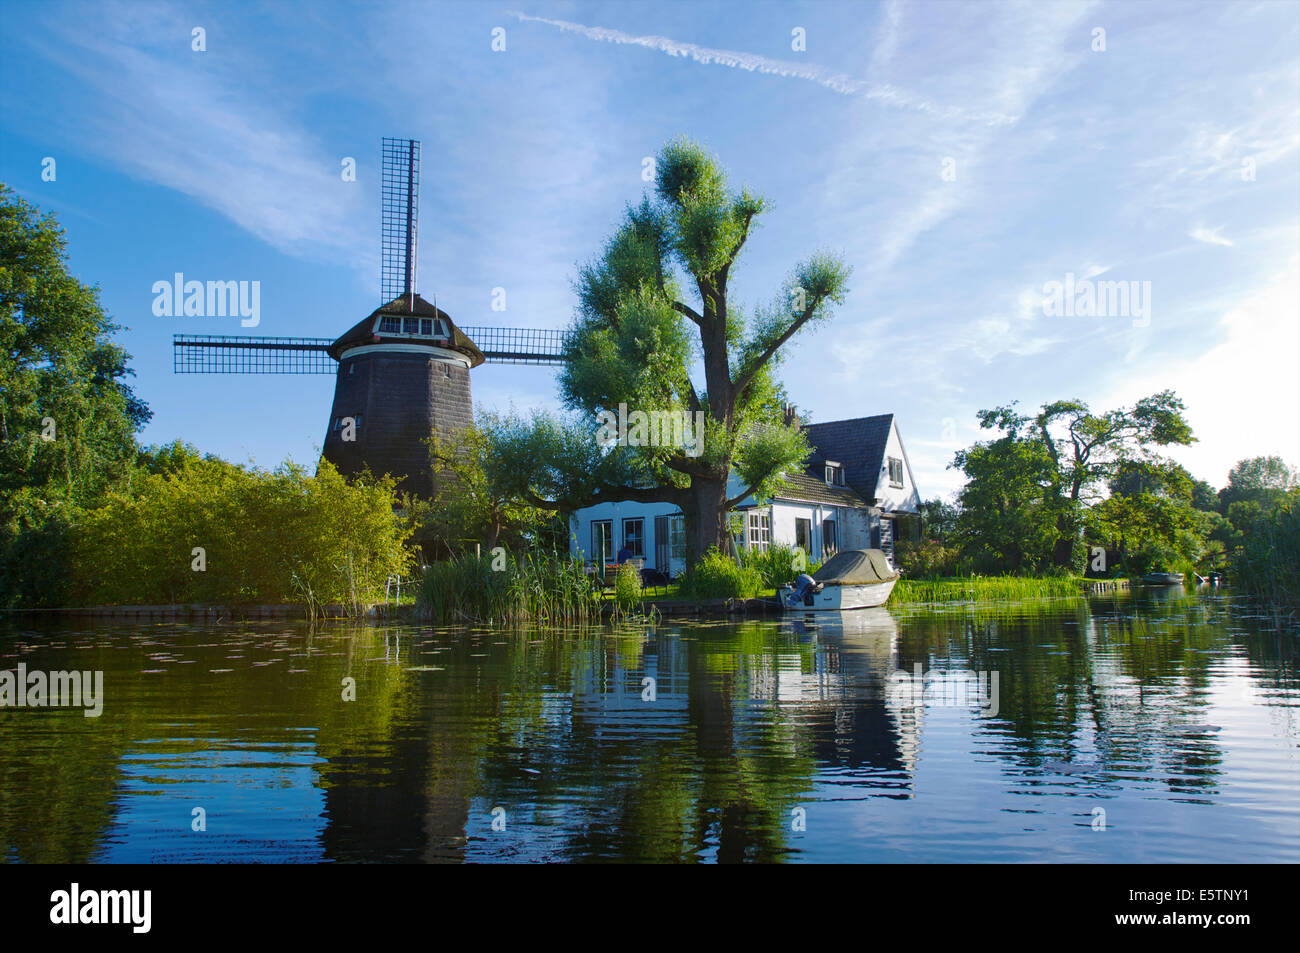 Beautifully located house with a windmill at the Spiegelplas or Mirror Lake in North Holland, The Netherlands - Stock Image